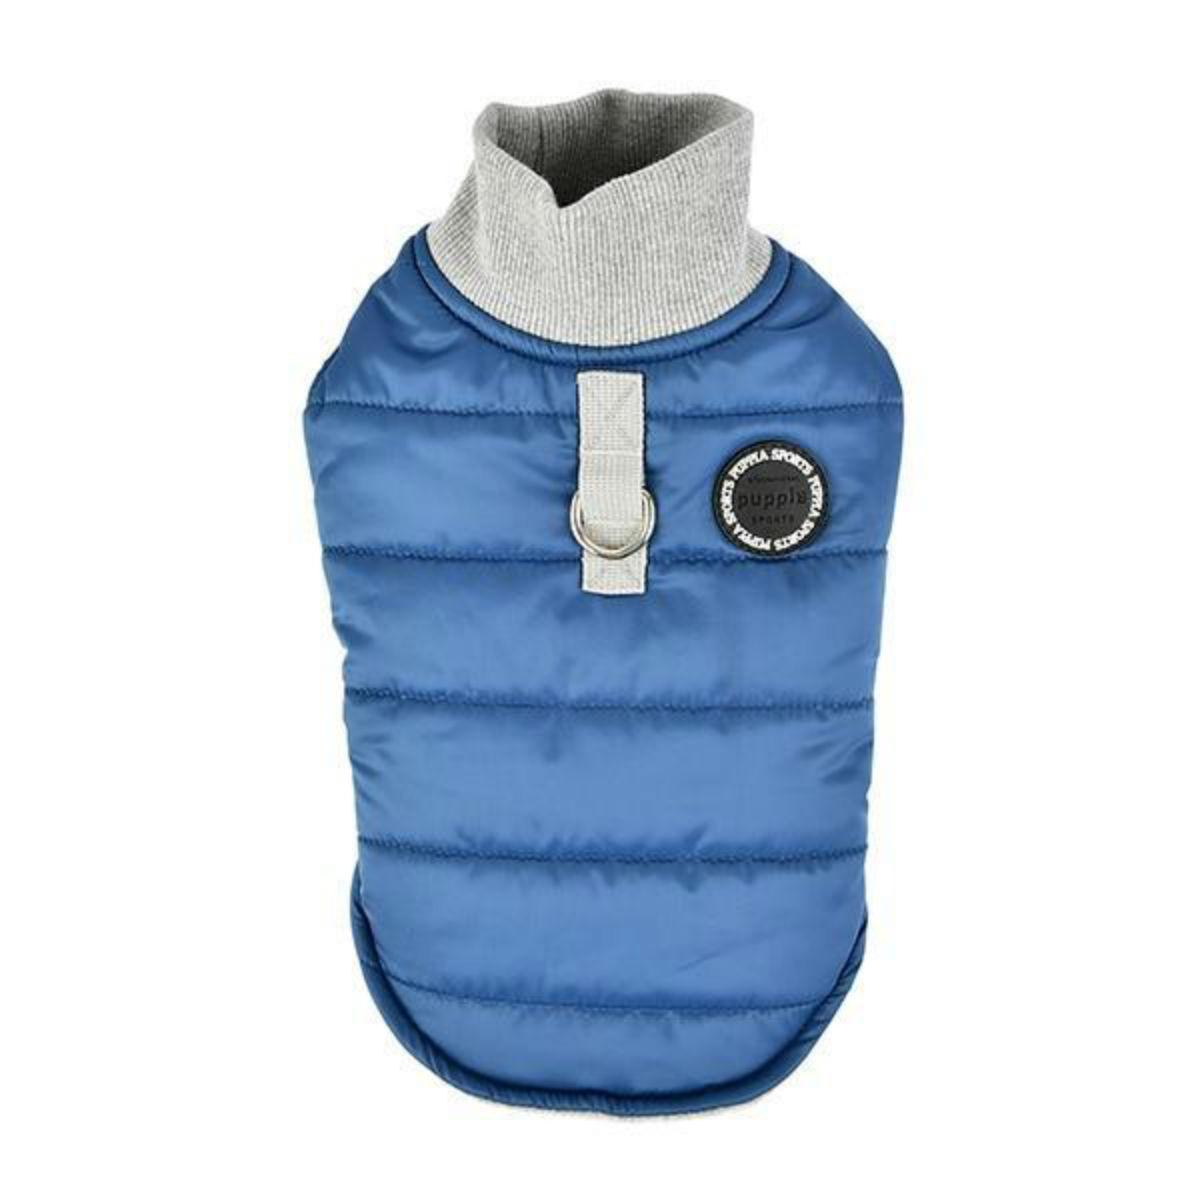 Wagner Quilted Dog Coat by Puppia - Blue